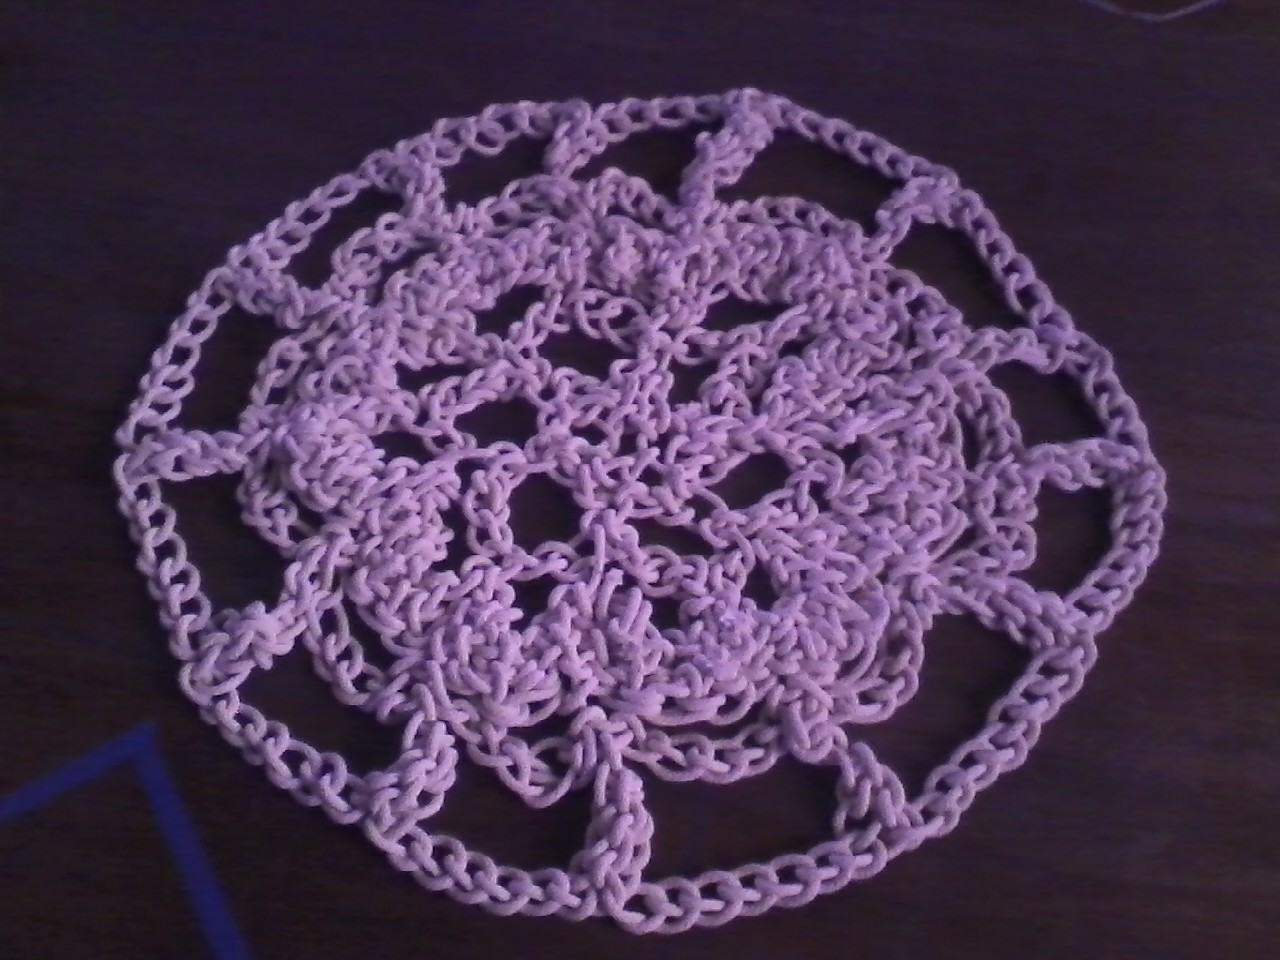 A Giant Doily - Made at 100W from 400 Feet of Rope.